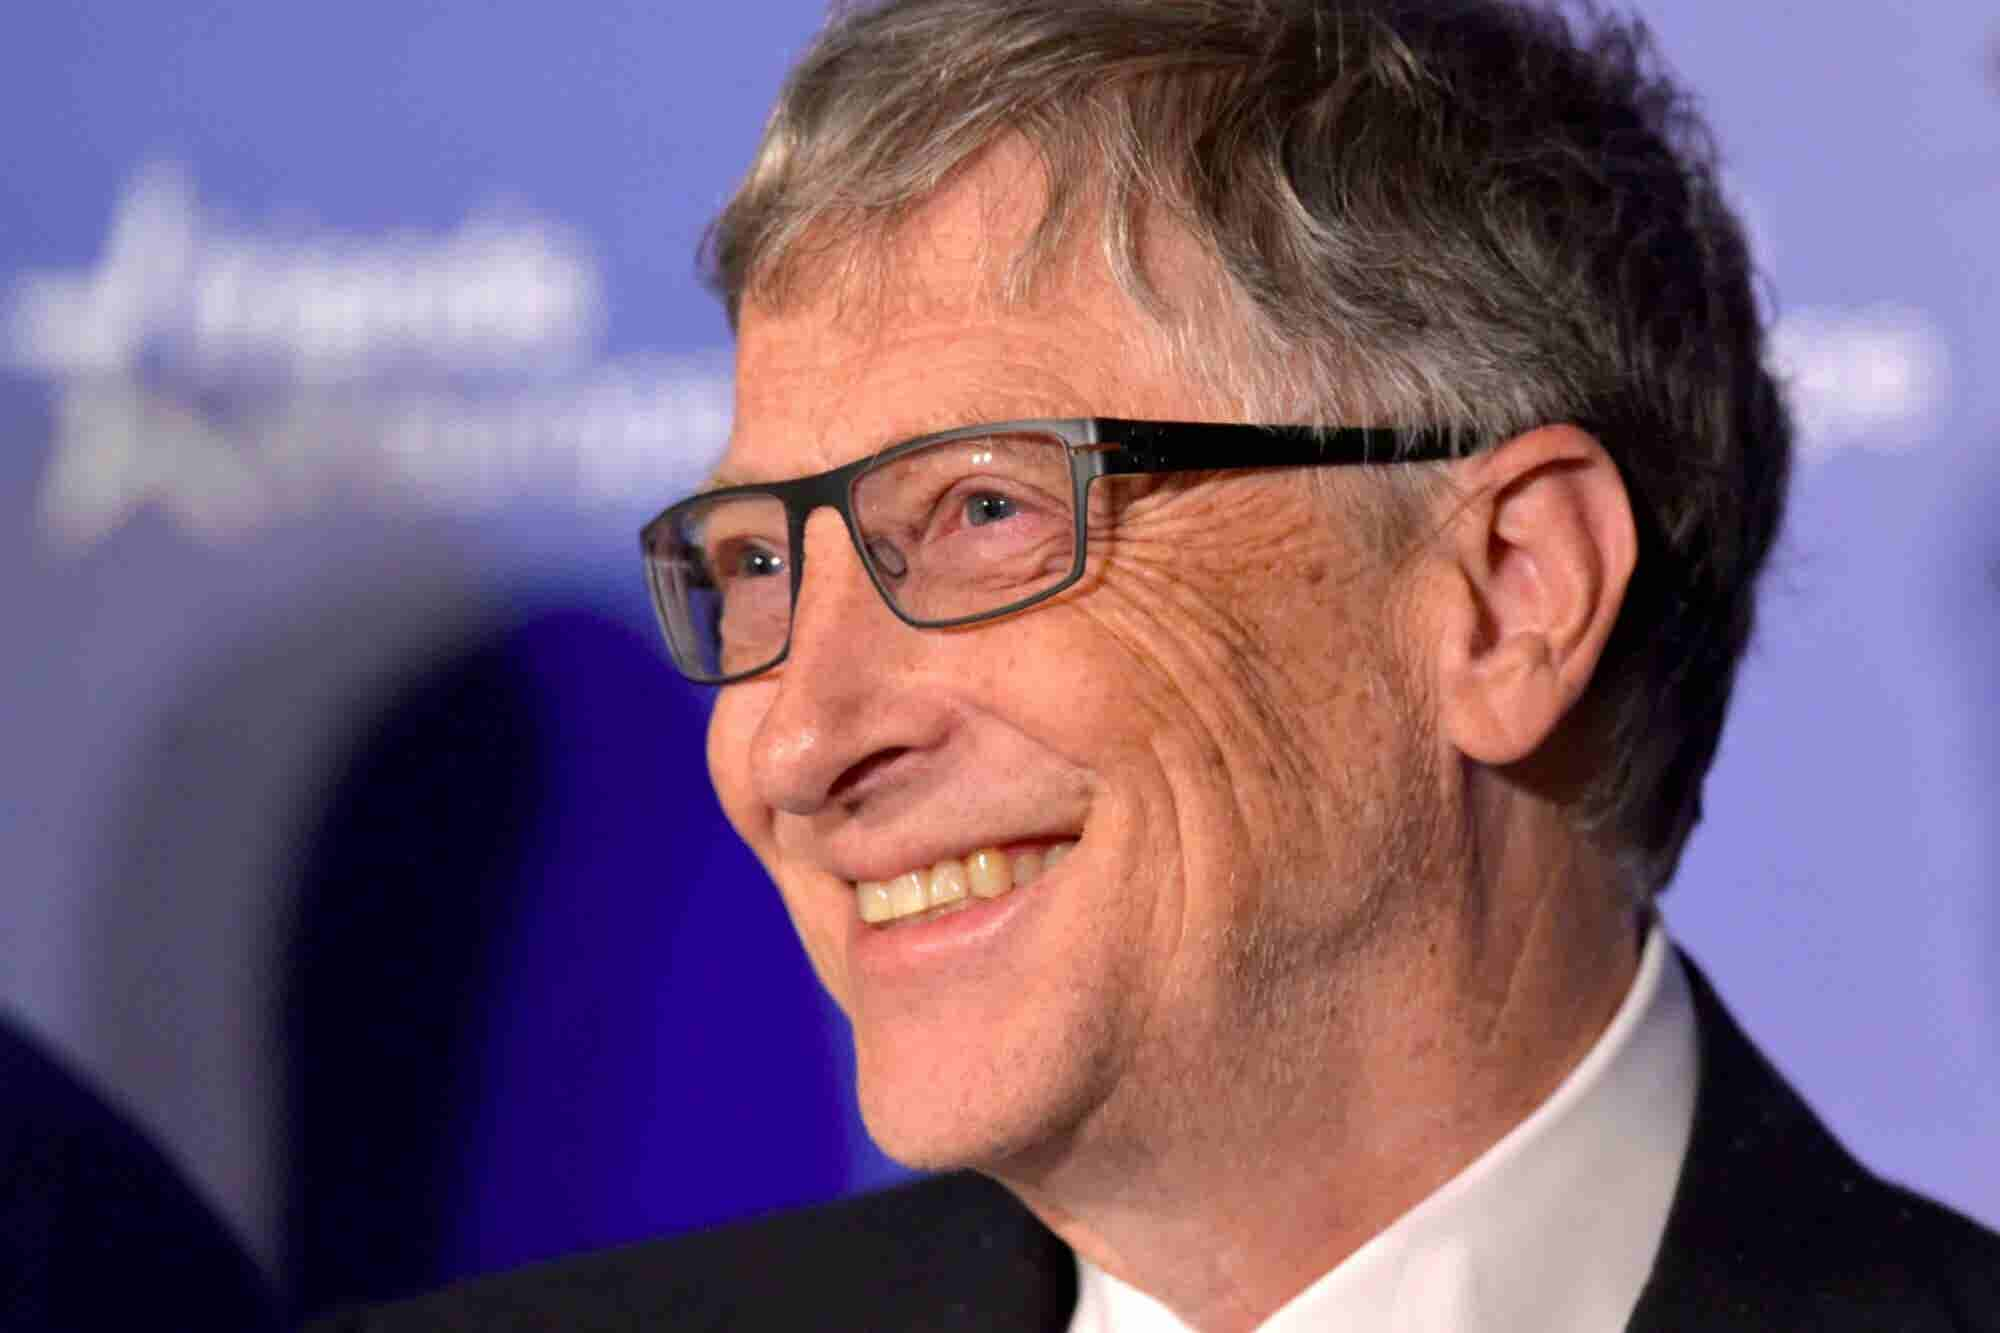 Bill Gates Says His Wealth Has Freed Him From Daily Concerns Like Healthcare